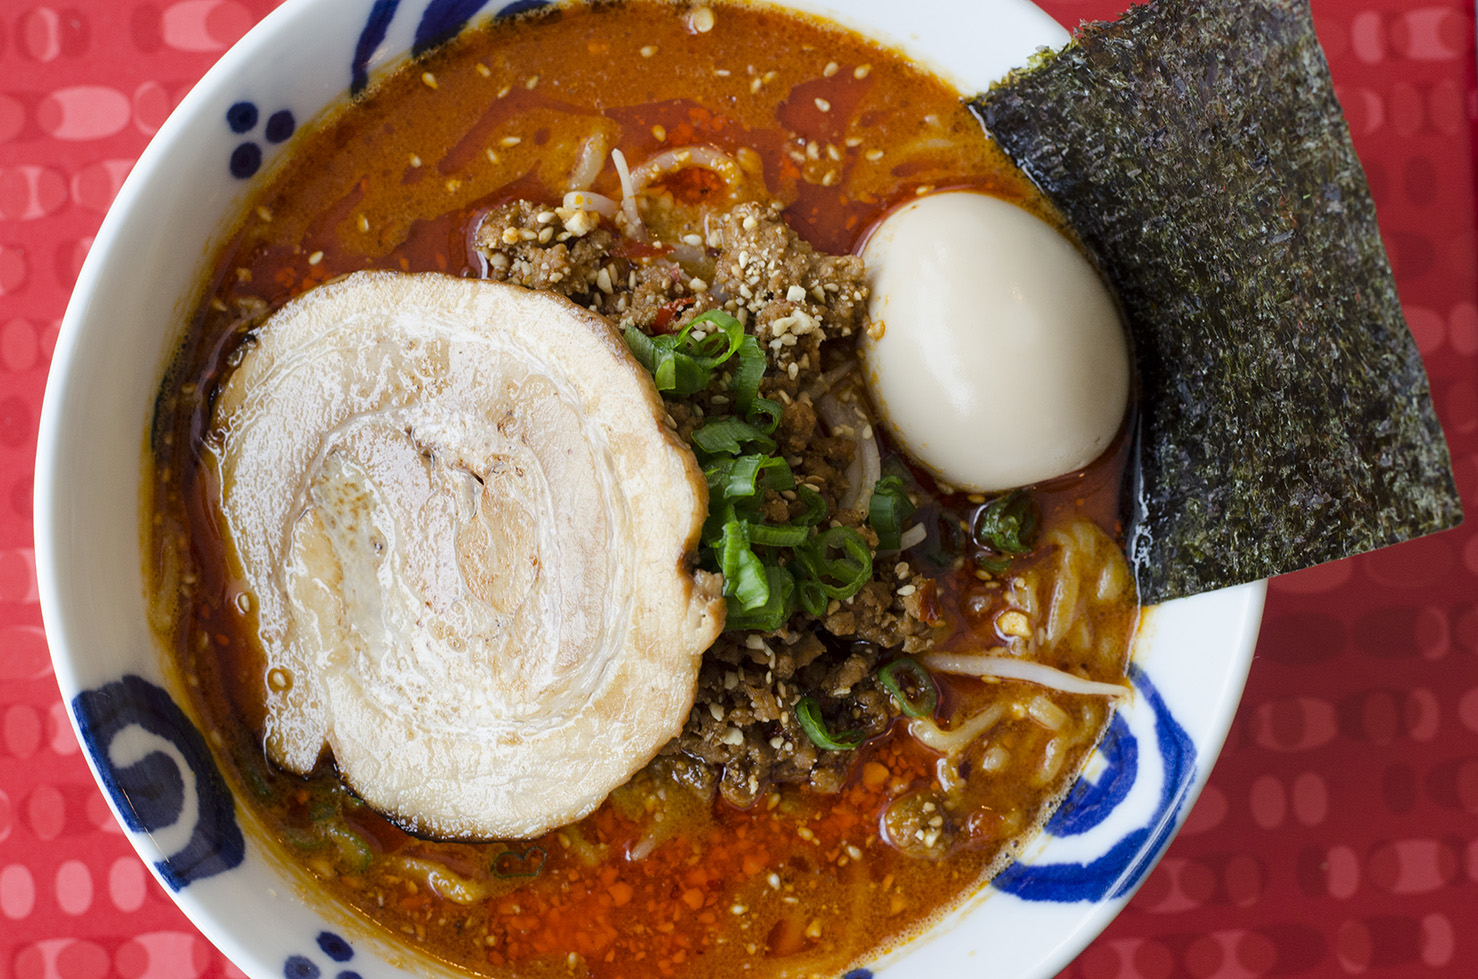 Is the Tantanmen ramen at Eros Asian Eatery Windsor's most popular ramen dish?